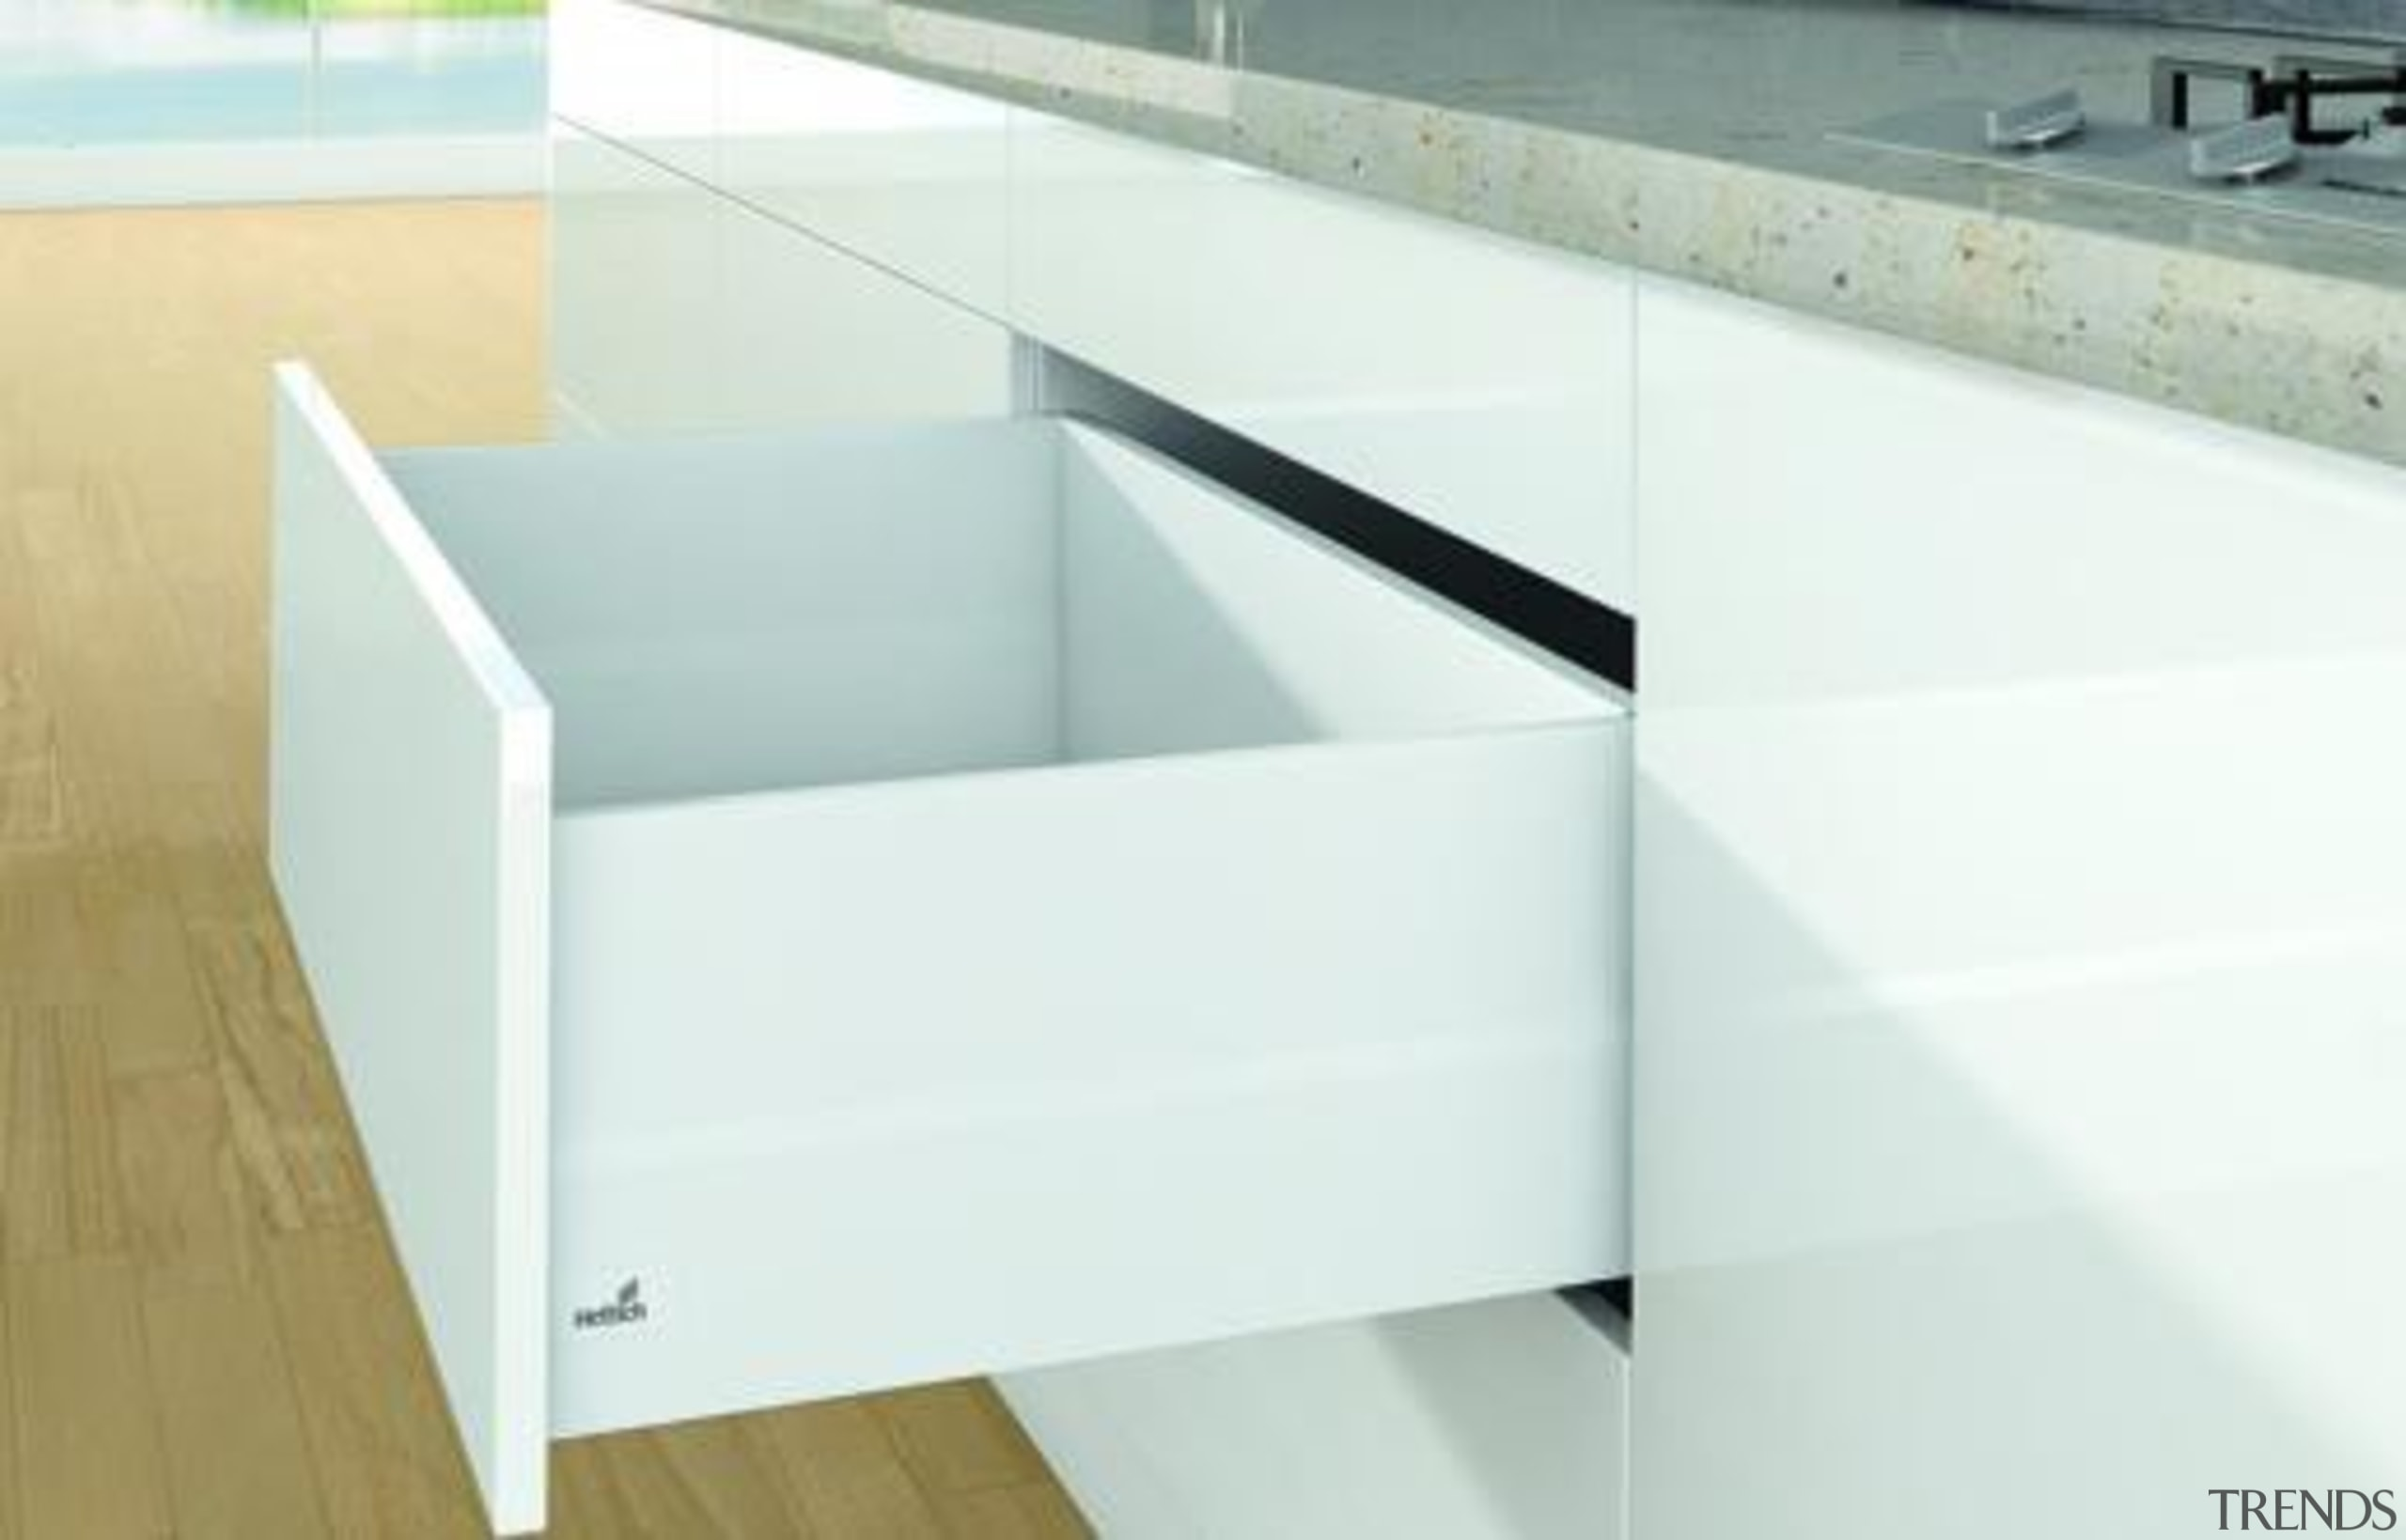 250mm Side Profile - 250mm Side Profile - angle, bathroom sink, drawer, floor, furniture, glass, plumbing fixture, product, product design, sink, table, tap, white